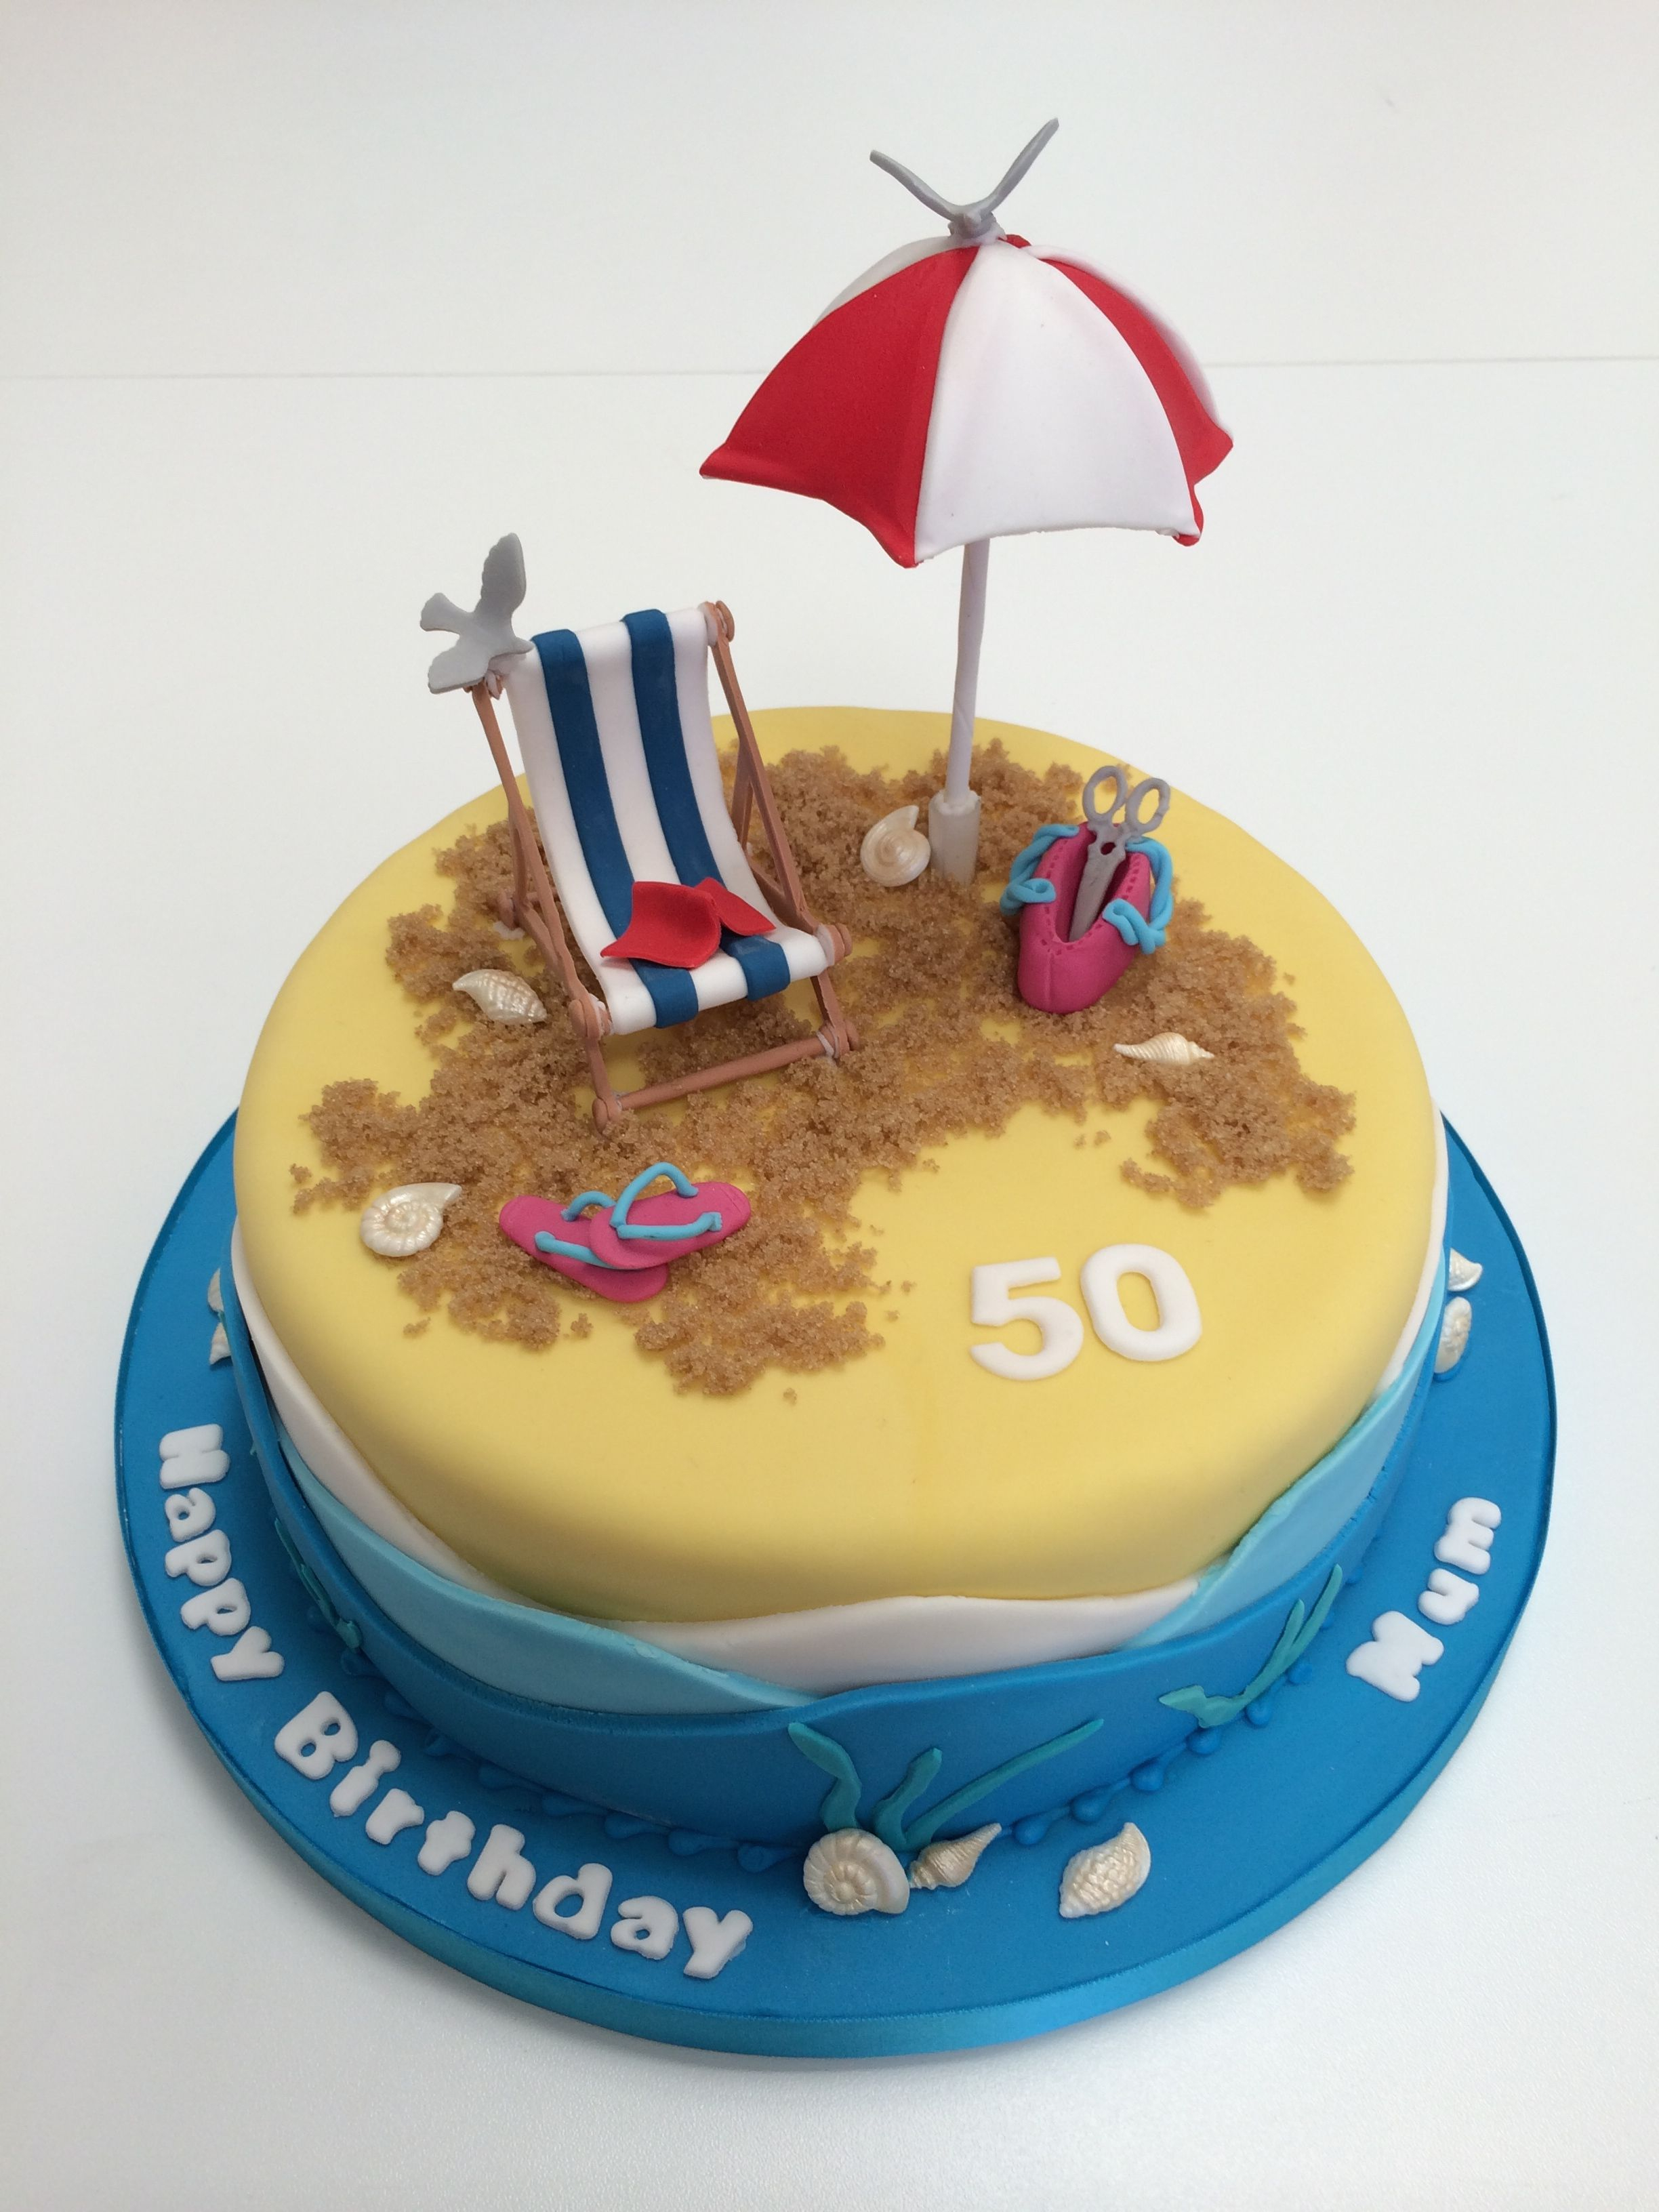 Incredible 25 Awesome Image Of Beach Themed Birthday Cakes Birijus Com Funny Birthday Cards Online Unhofree Goldxyz